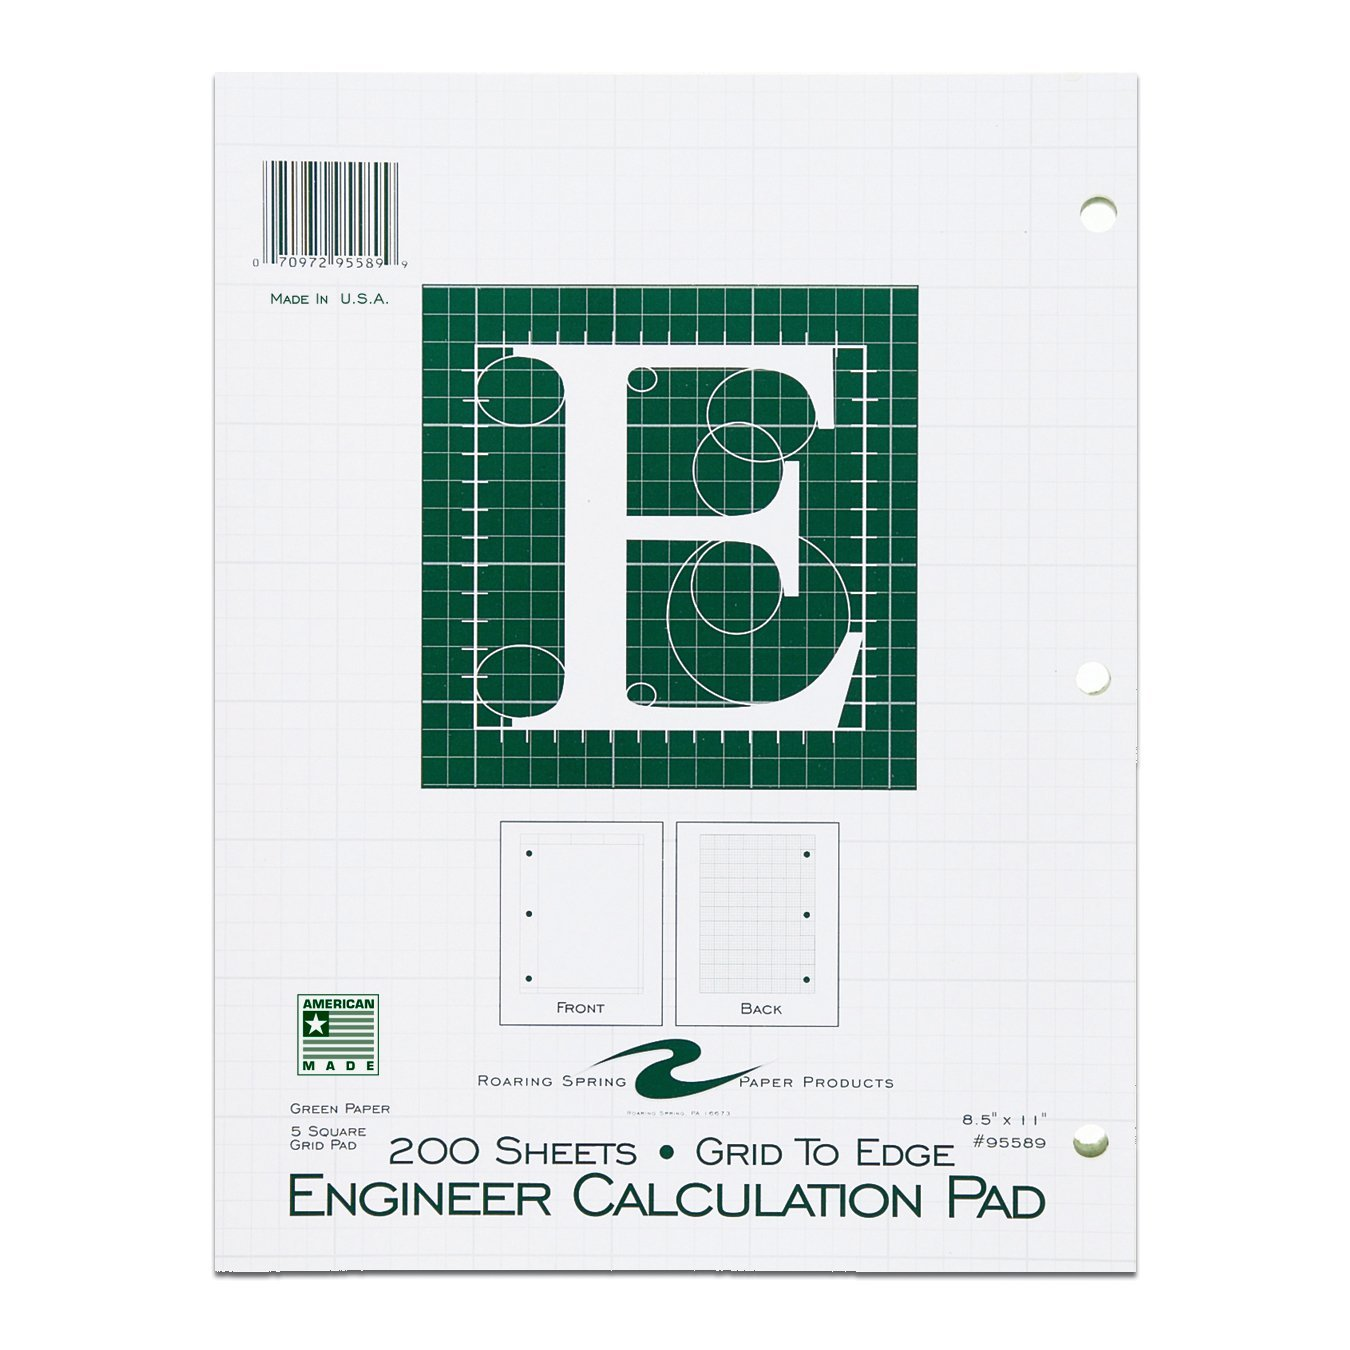 Image For ENGINEER CALCULATION PAD 200 SHEETS